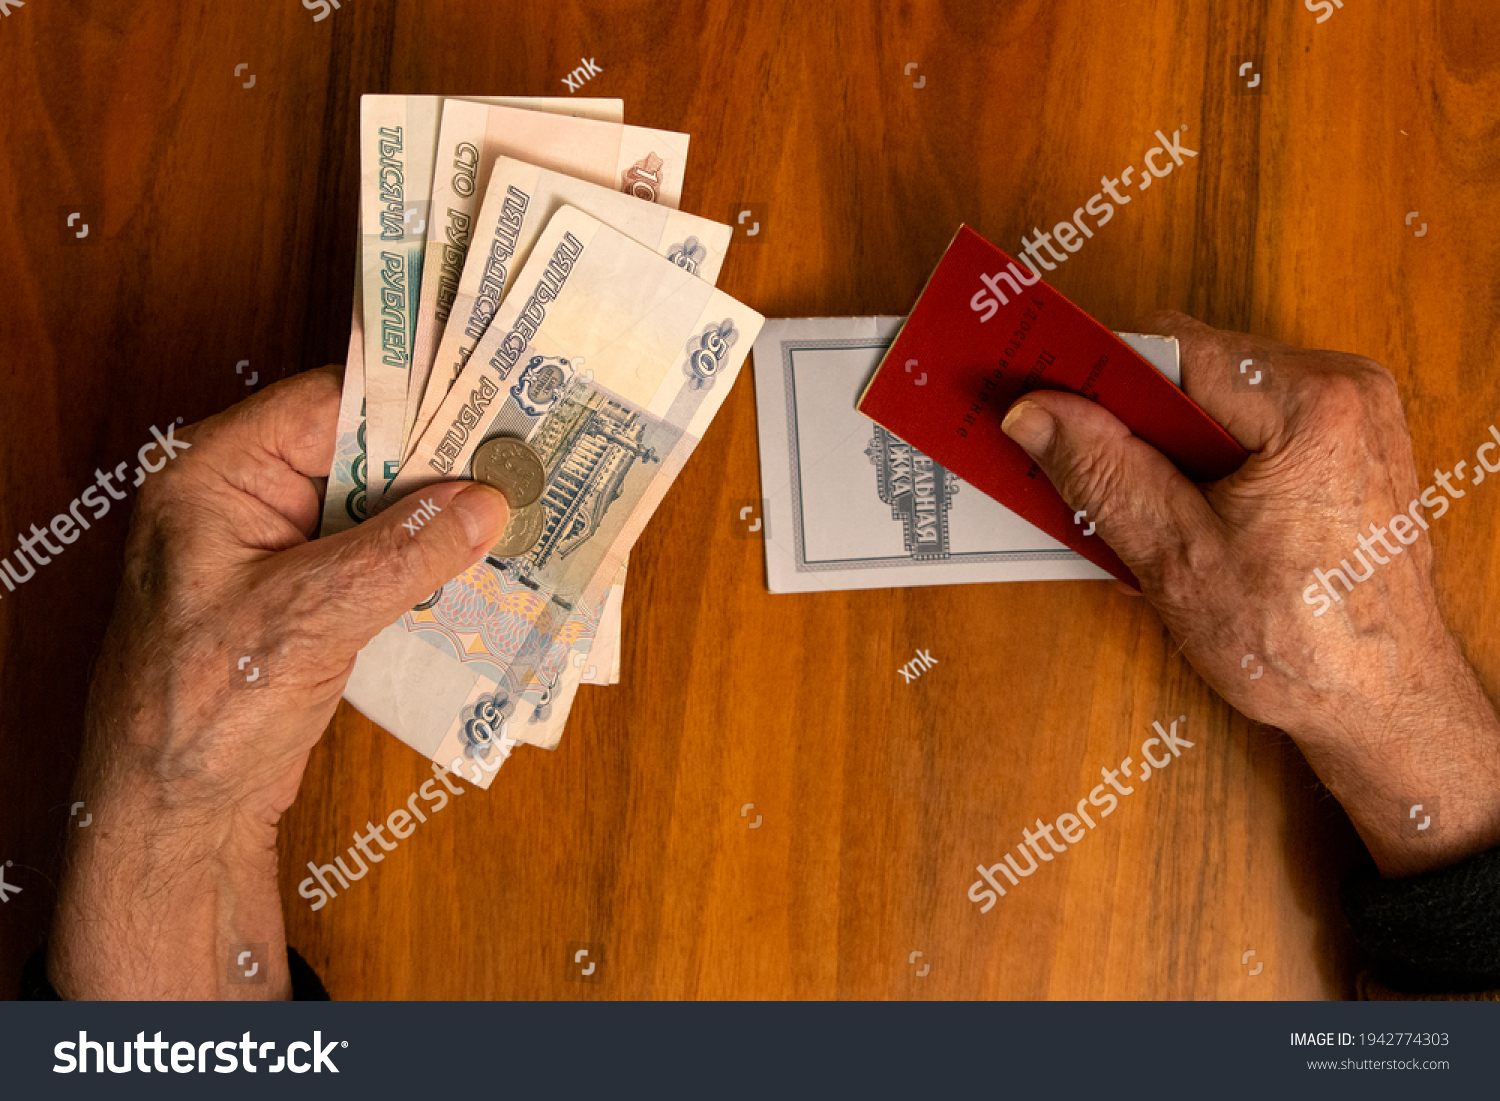 Elderly man holding russian ruble banknotes in one hand and pension certificate with passbook in another. The concept of pension, payment and money savings. #1942774303